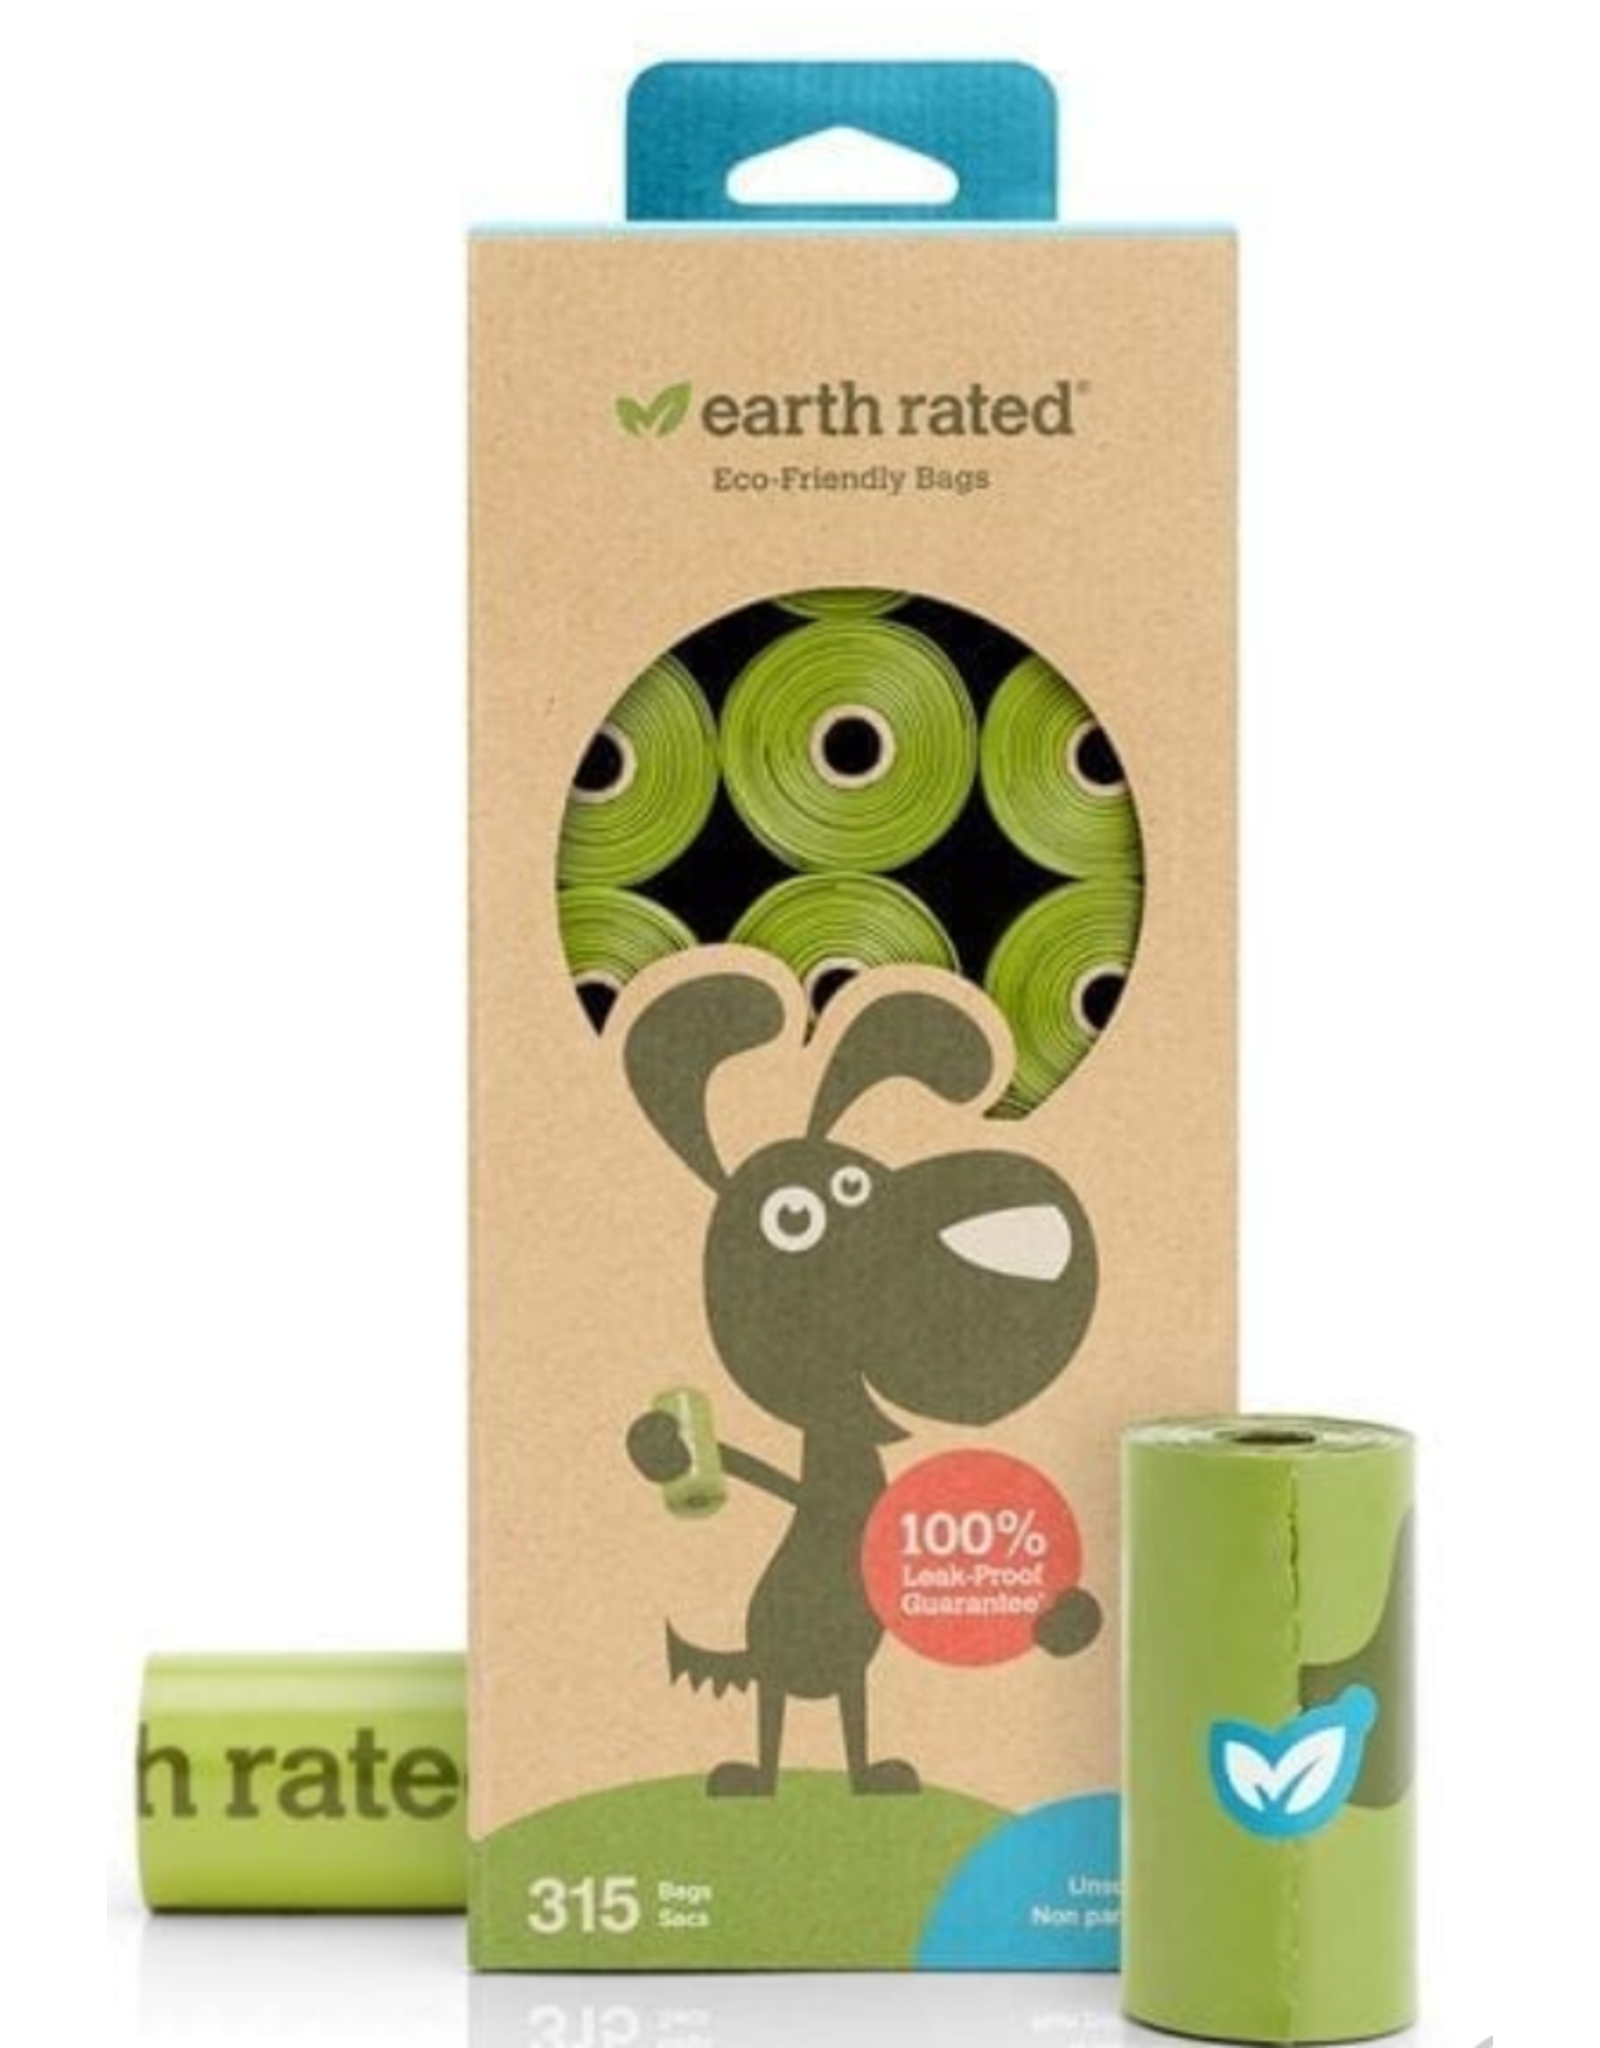 Earth Rated Earth Rated Poop Bags - 315 - Unscented